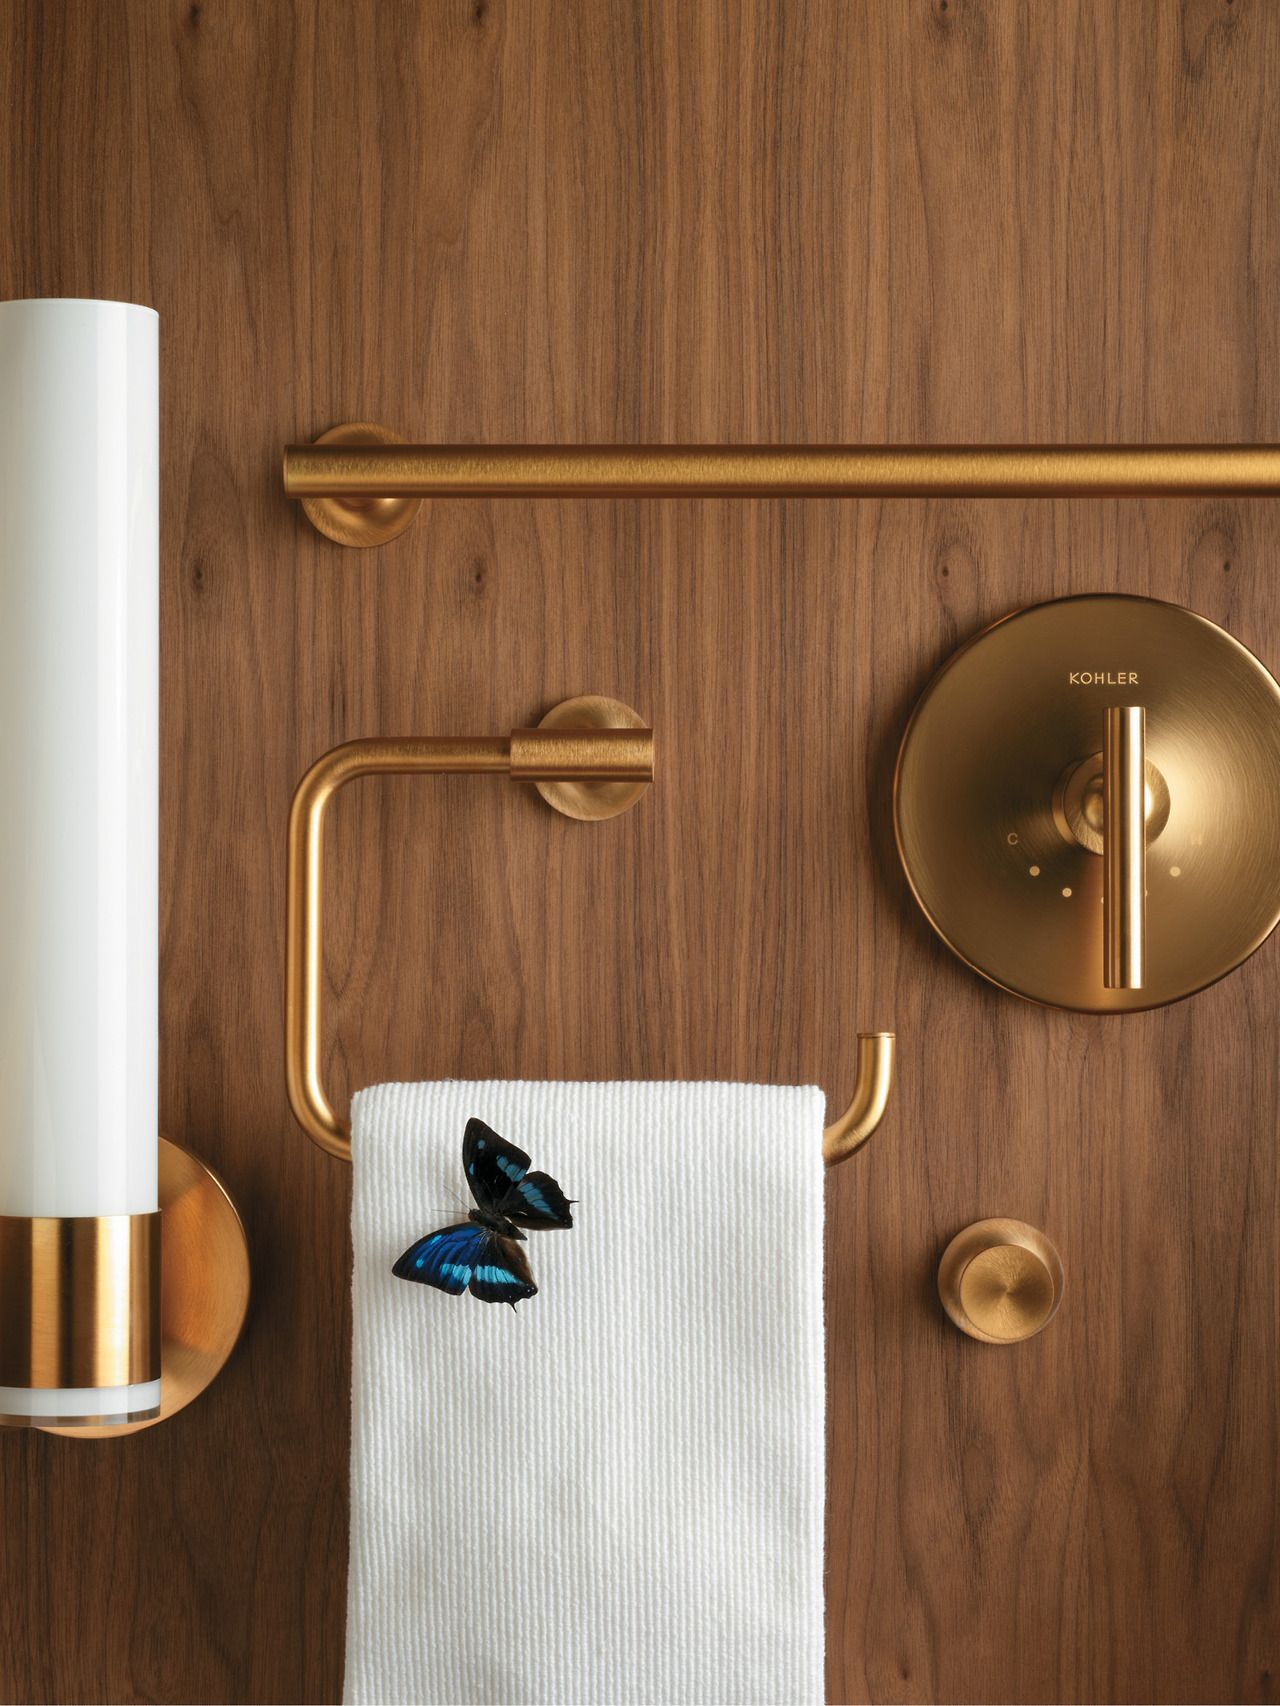 bold ideas from kohler nothing elevates a bathroom quite like the purist accessories in gleaming shimmering gold - Bathroom Accessories Kohler